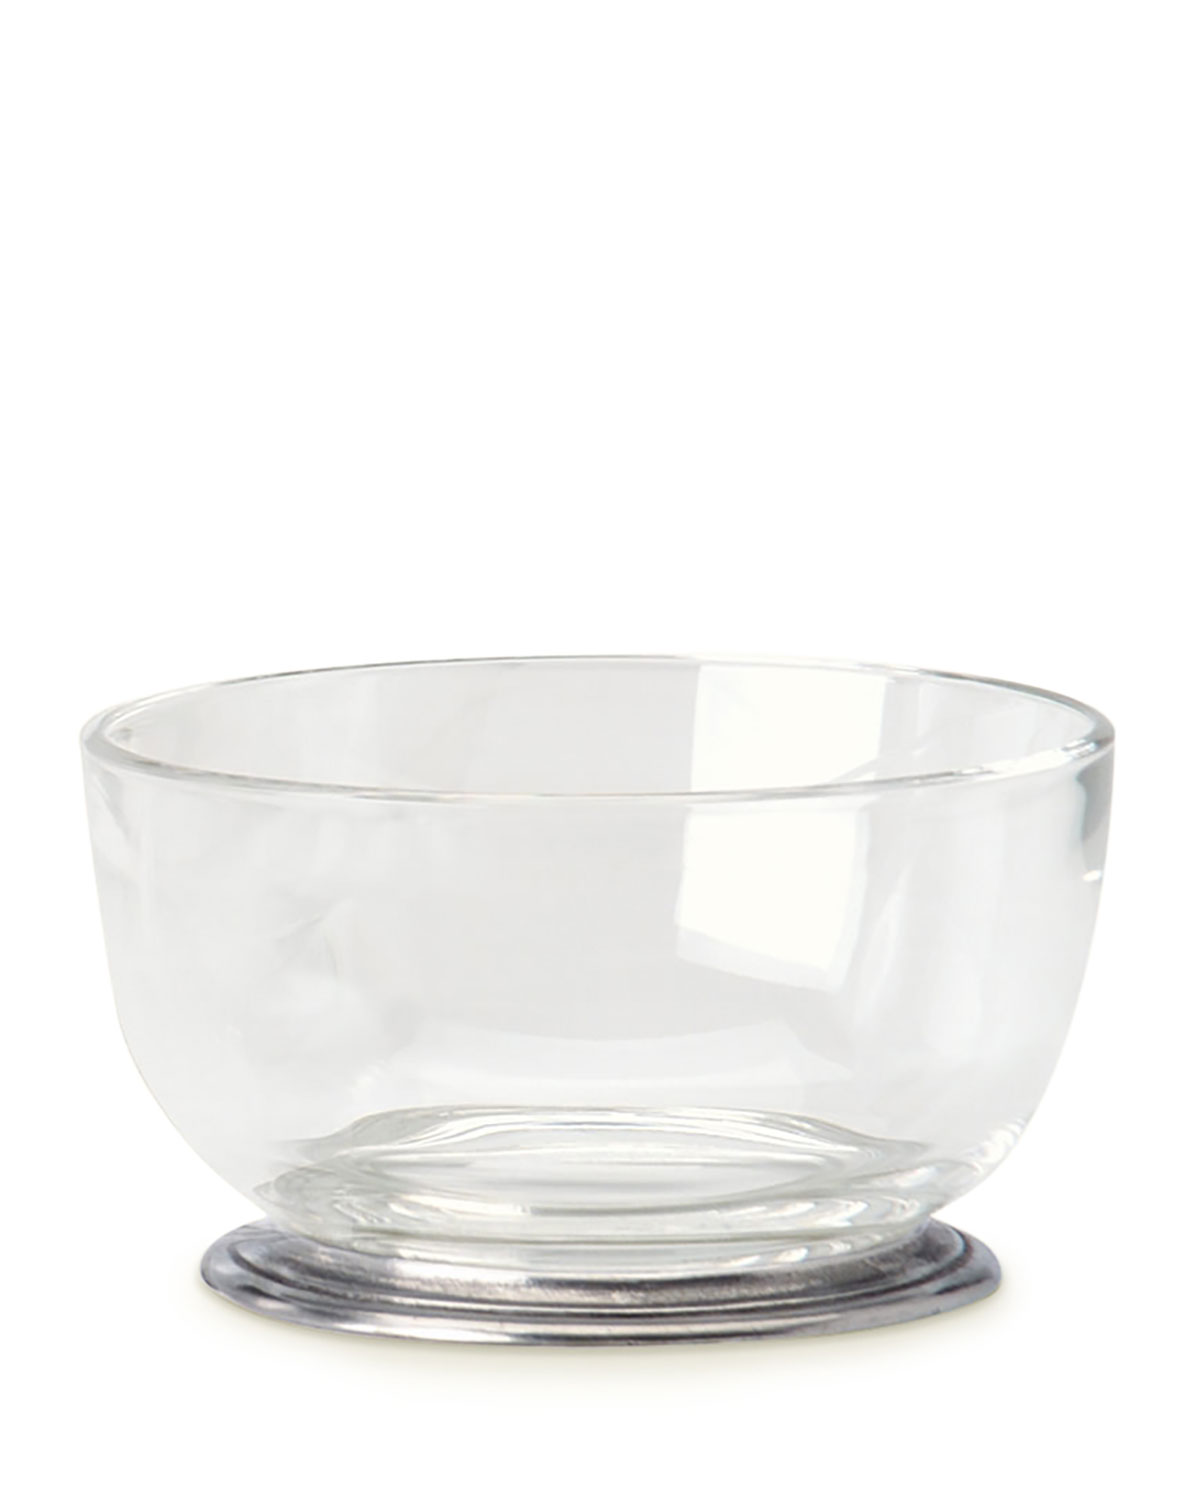 Match Round Crystal Bowl